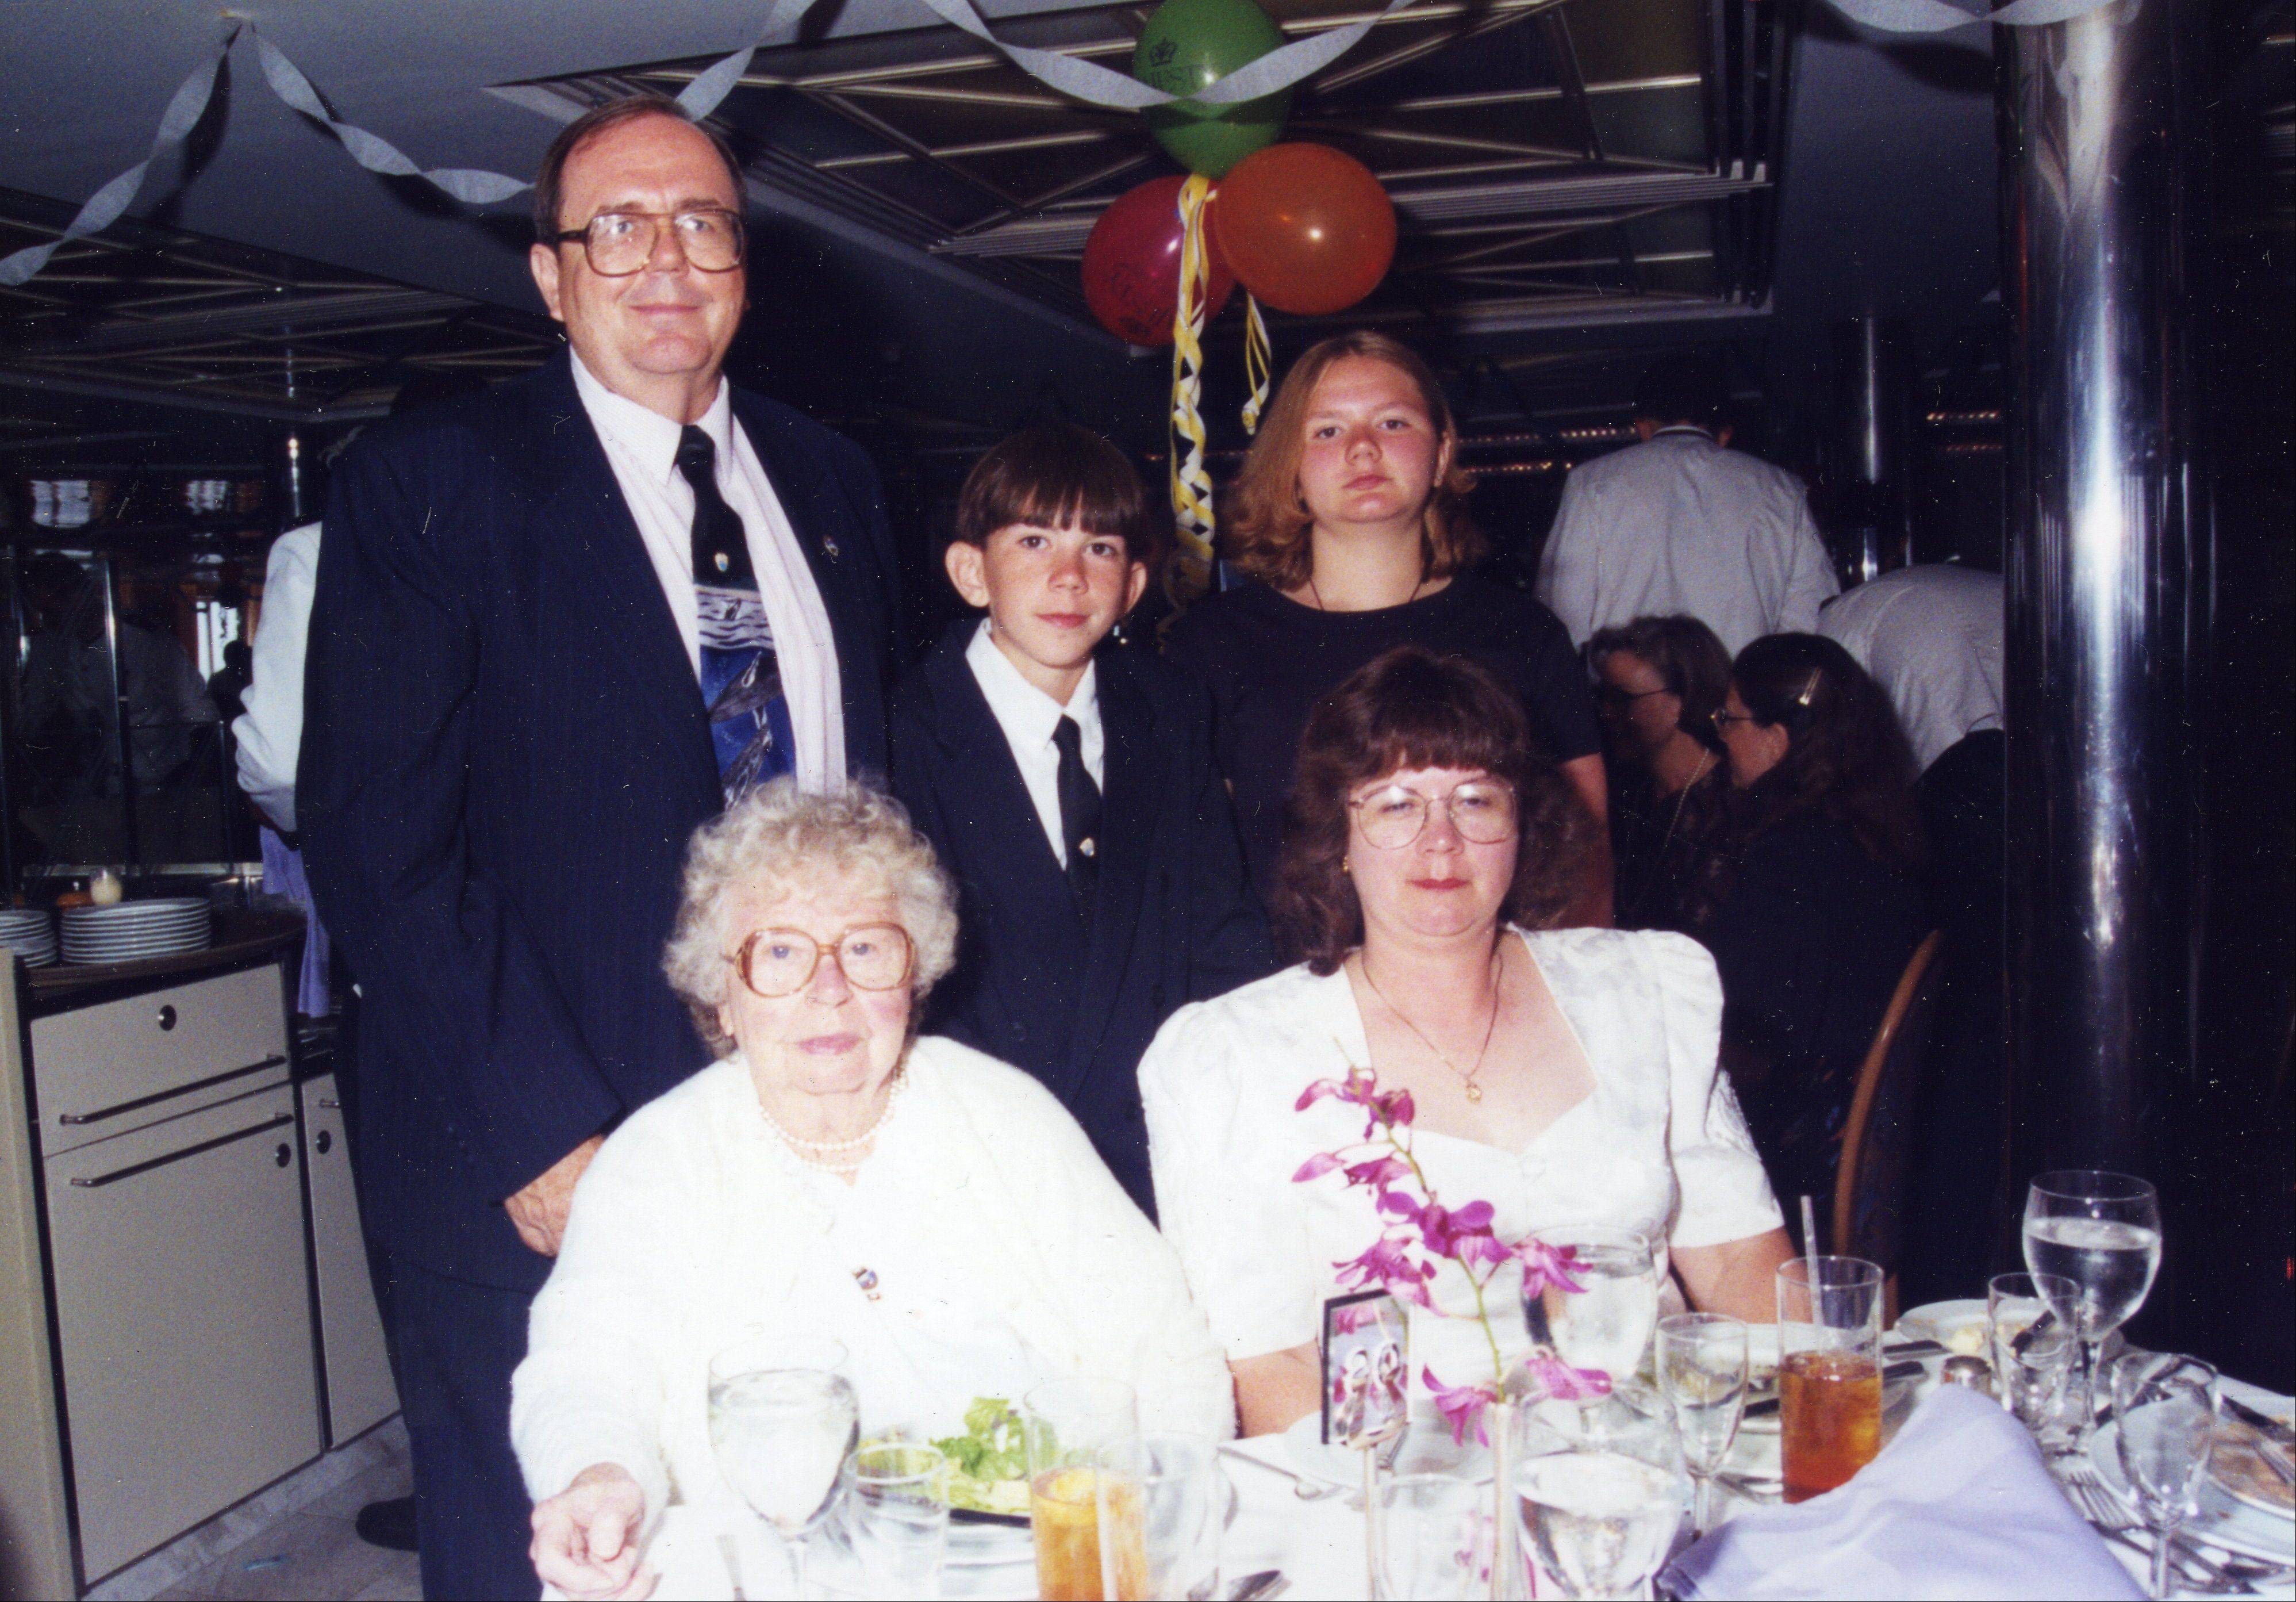 The Shuman family -- Earl, Robert, Melissa, Debra and Eleanor -- were on board the Royal Majesty cruise ship in August 1996 when it brought Titanic survivors to the site of its 1912 sinking.